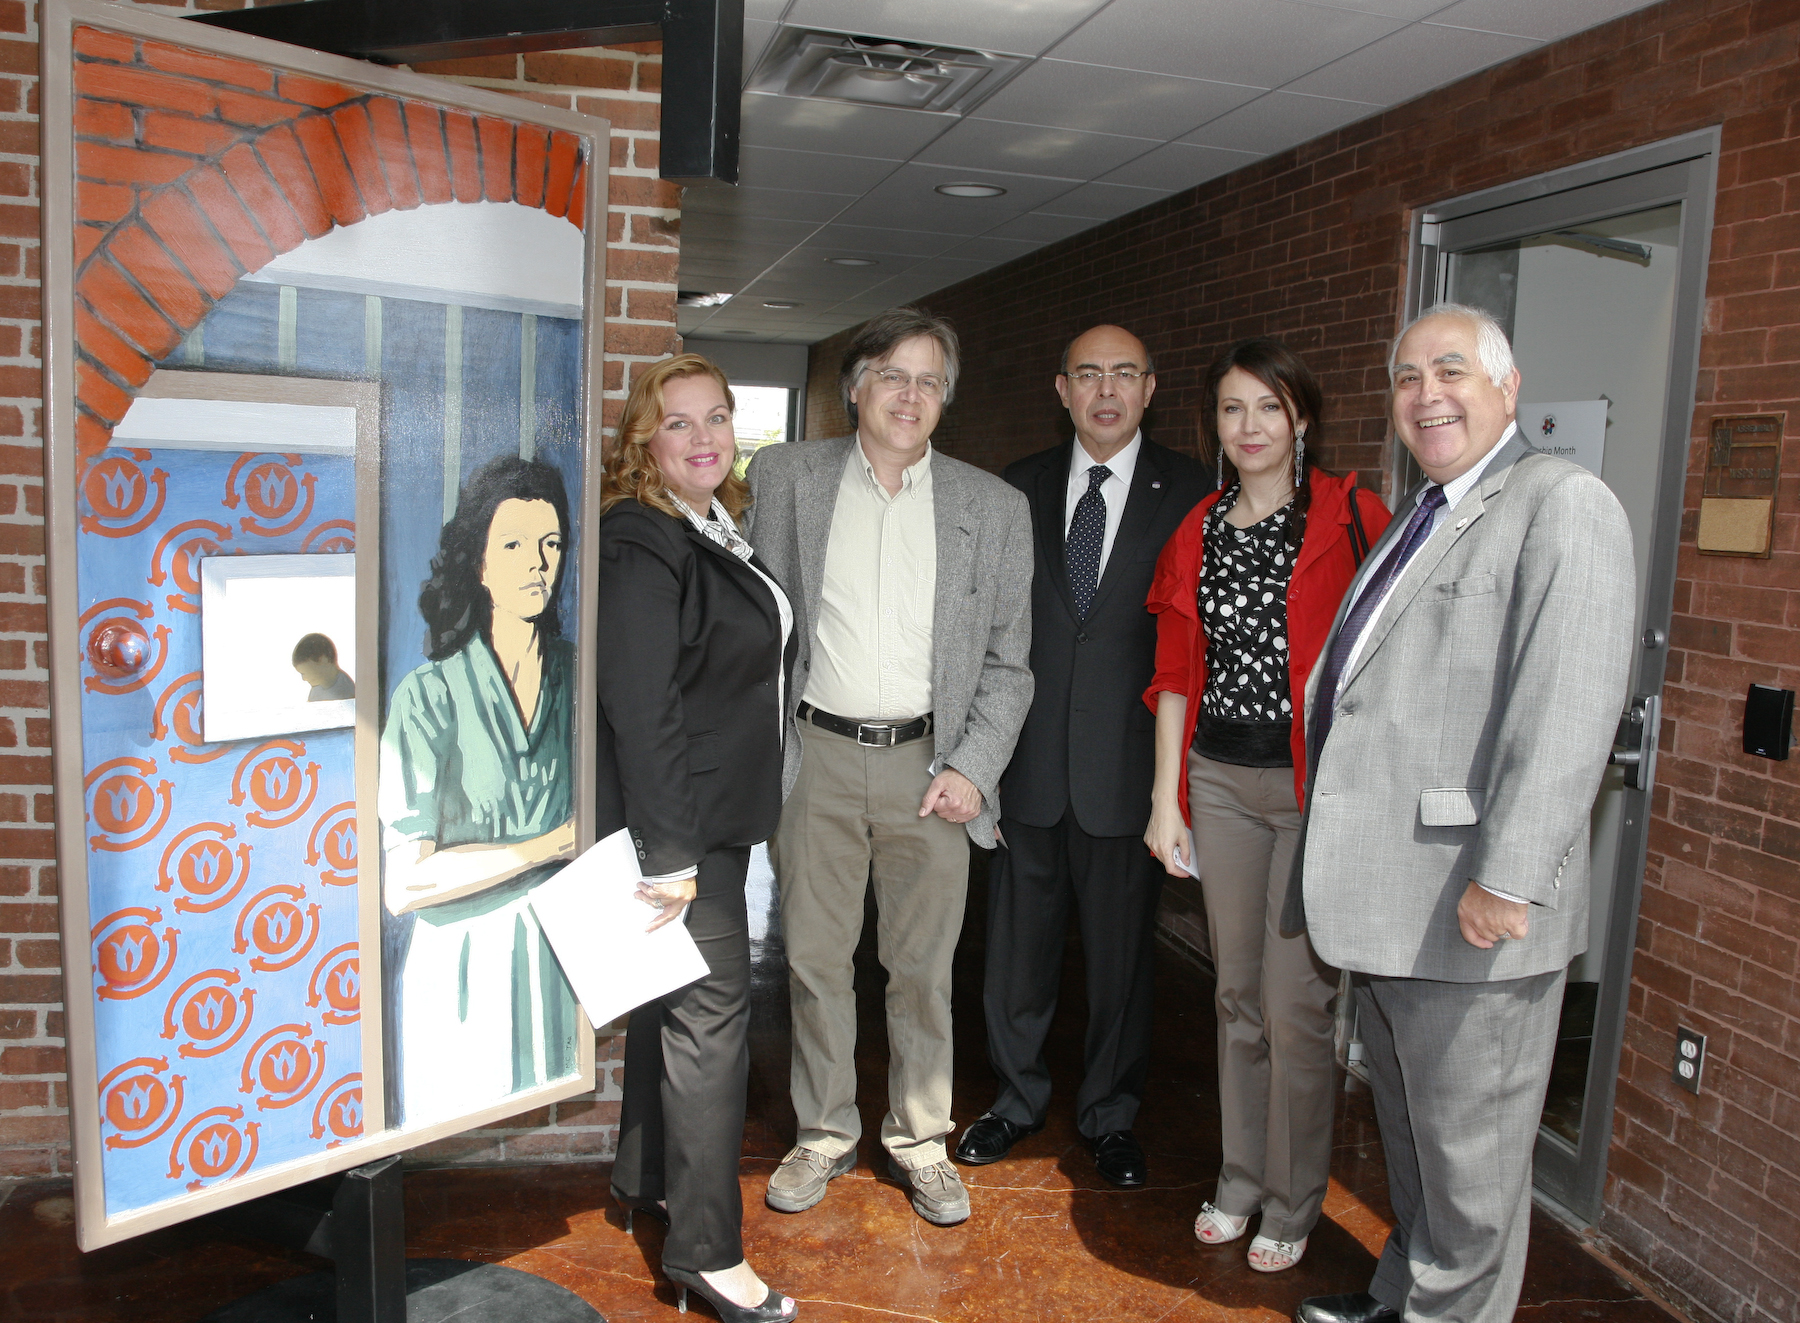 (From left to right):  Dr. Noël Bezette-Flores, Mark Cervenka, Juan Carreon, Karine Parker-Lemoyne and Dr. Bill Flores stand in front of a door painted by Cervenka and French Artist Clément Laurentin for the Texan-French Alliance for the Arts' Open the Door art project.